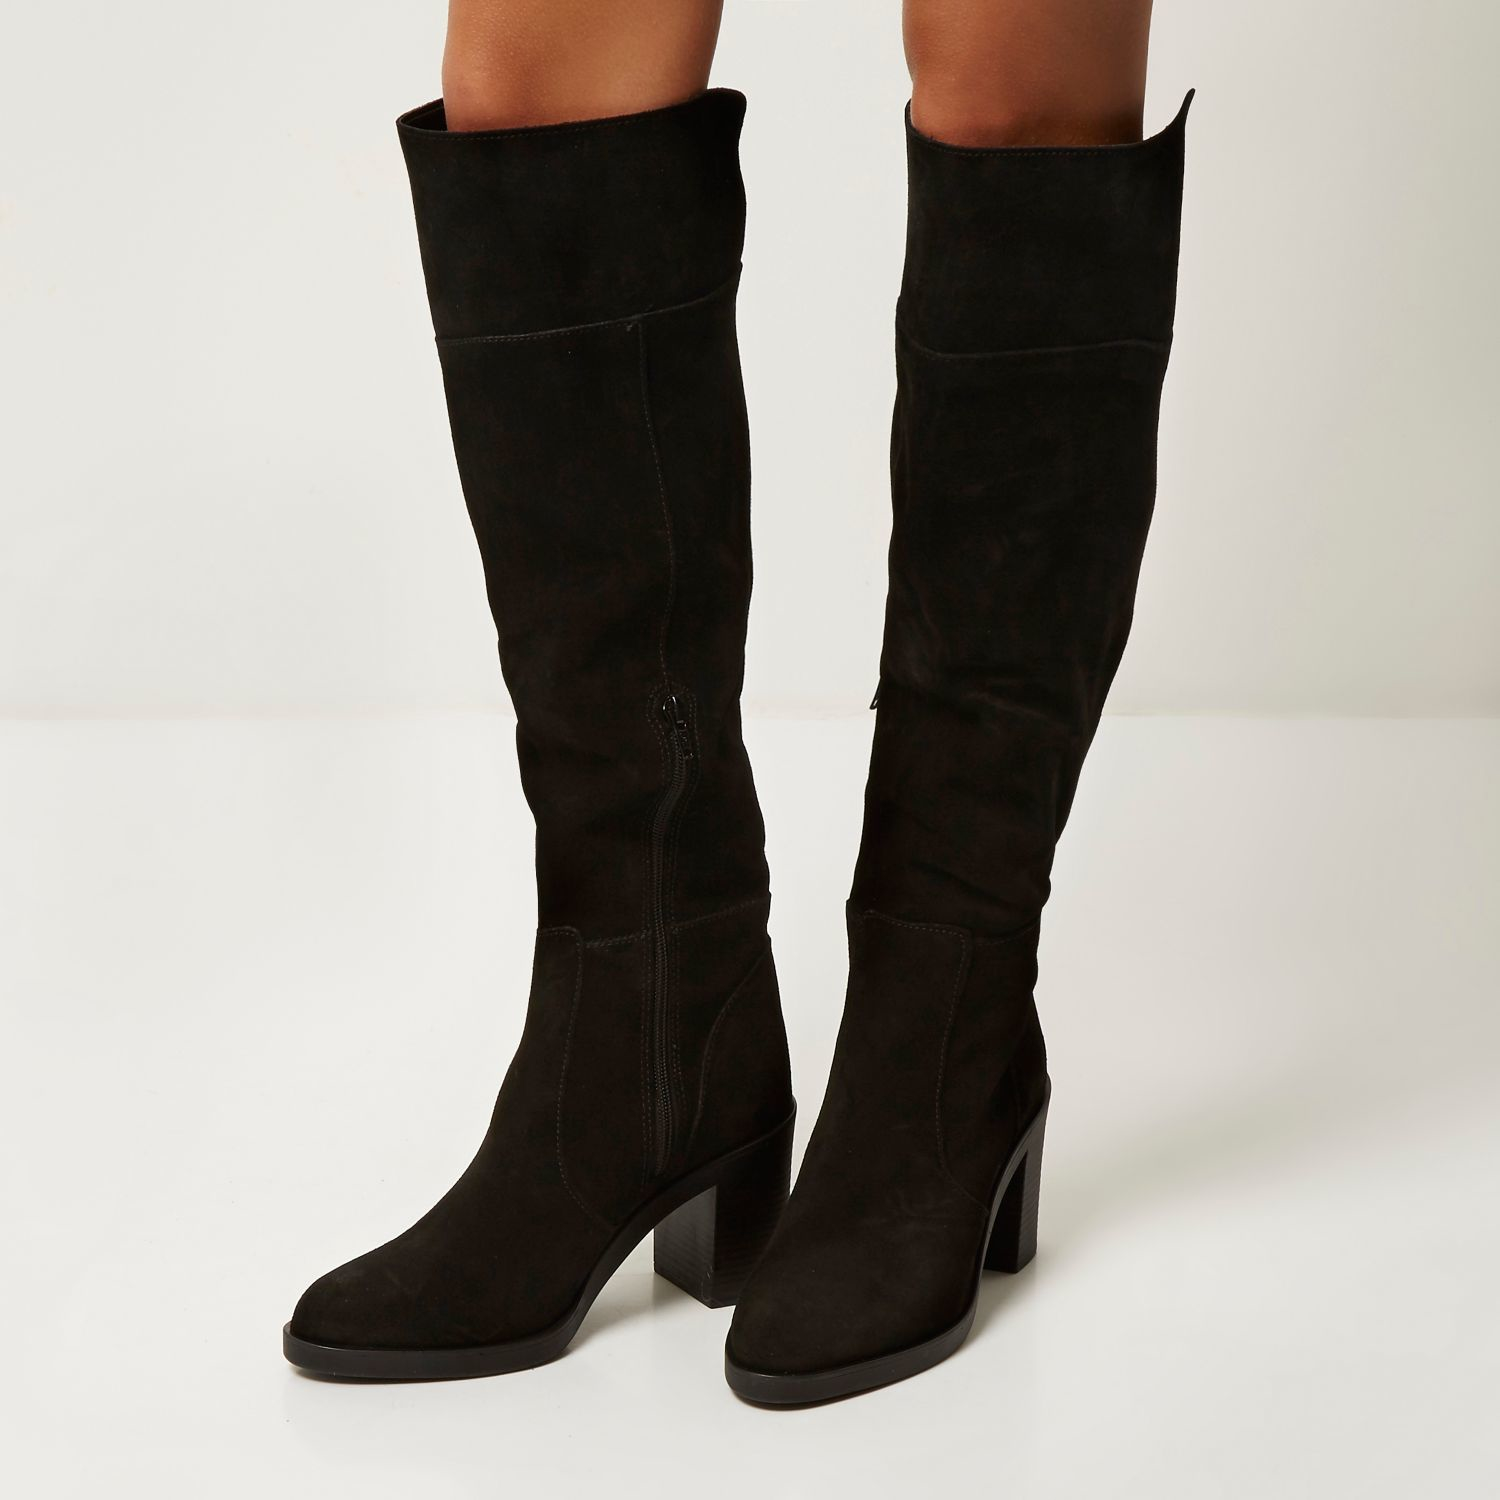 river island ladies boots Shop Clothing